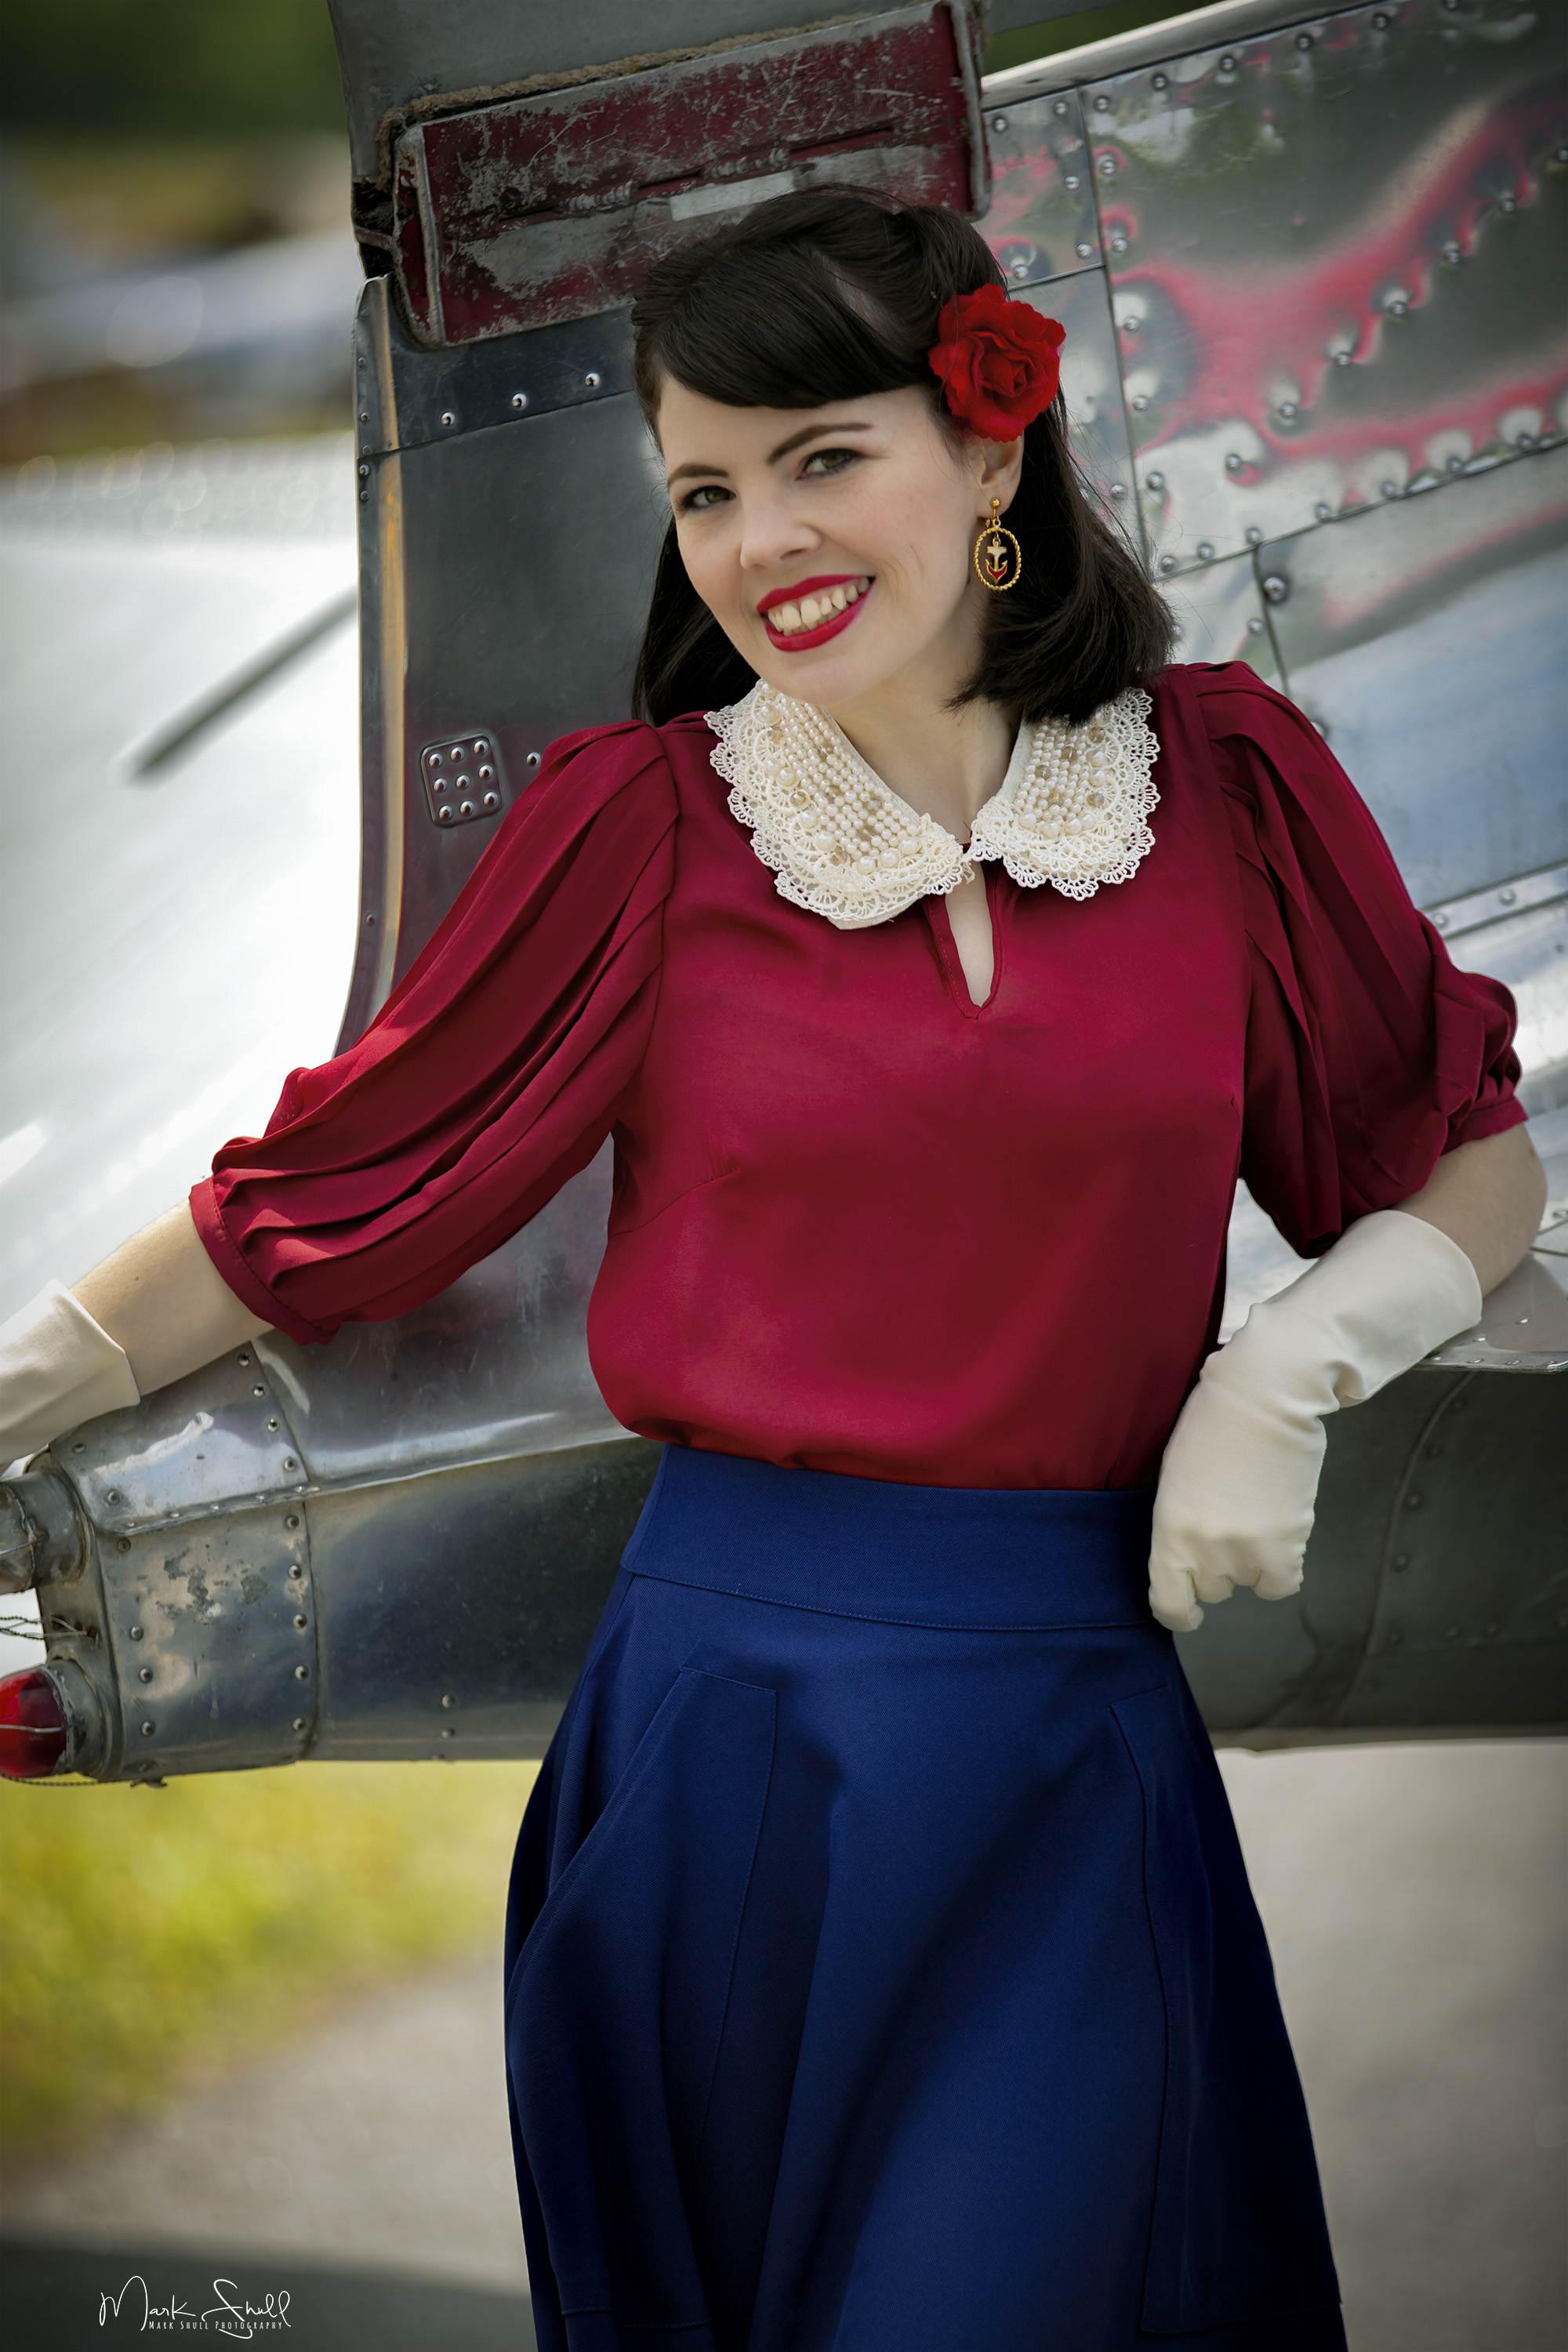 WWII pinup model A